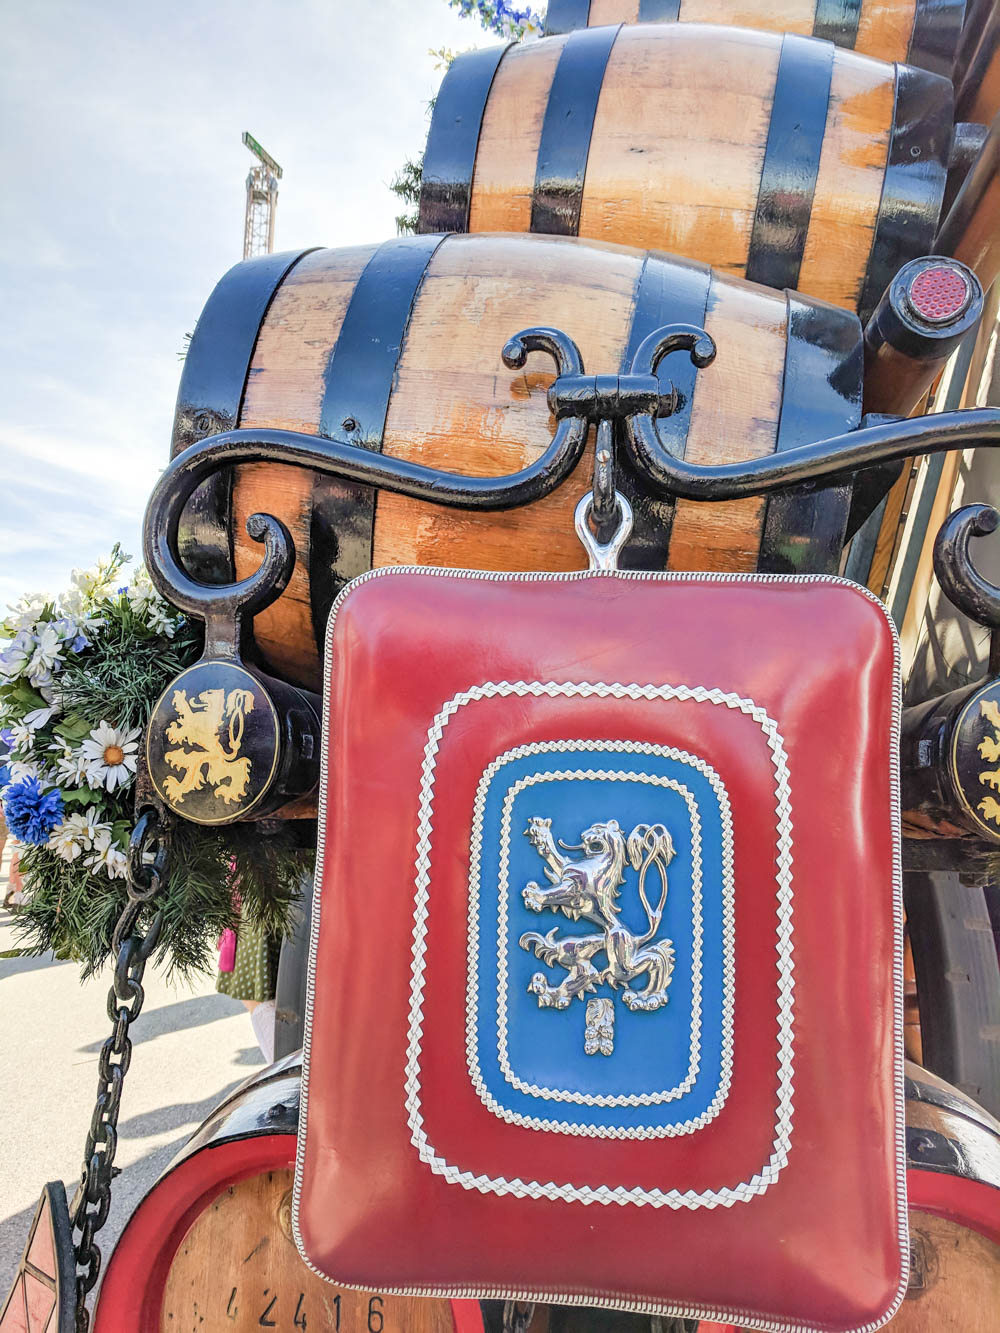 Oktoberfest party beer: What kind of beer to serve at your oktoberfest party   Lowenbrau beer barrels